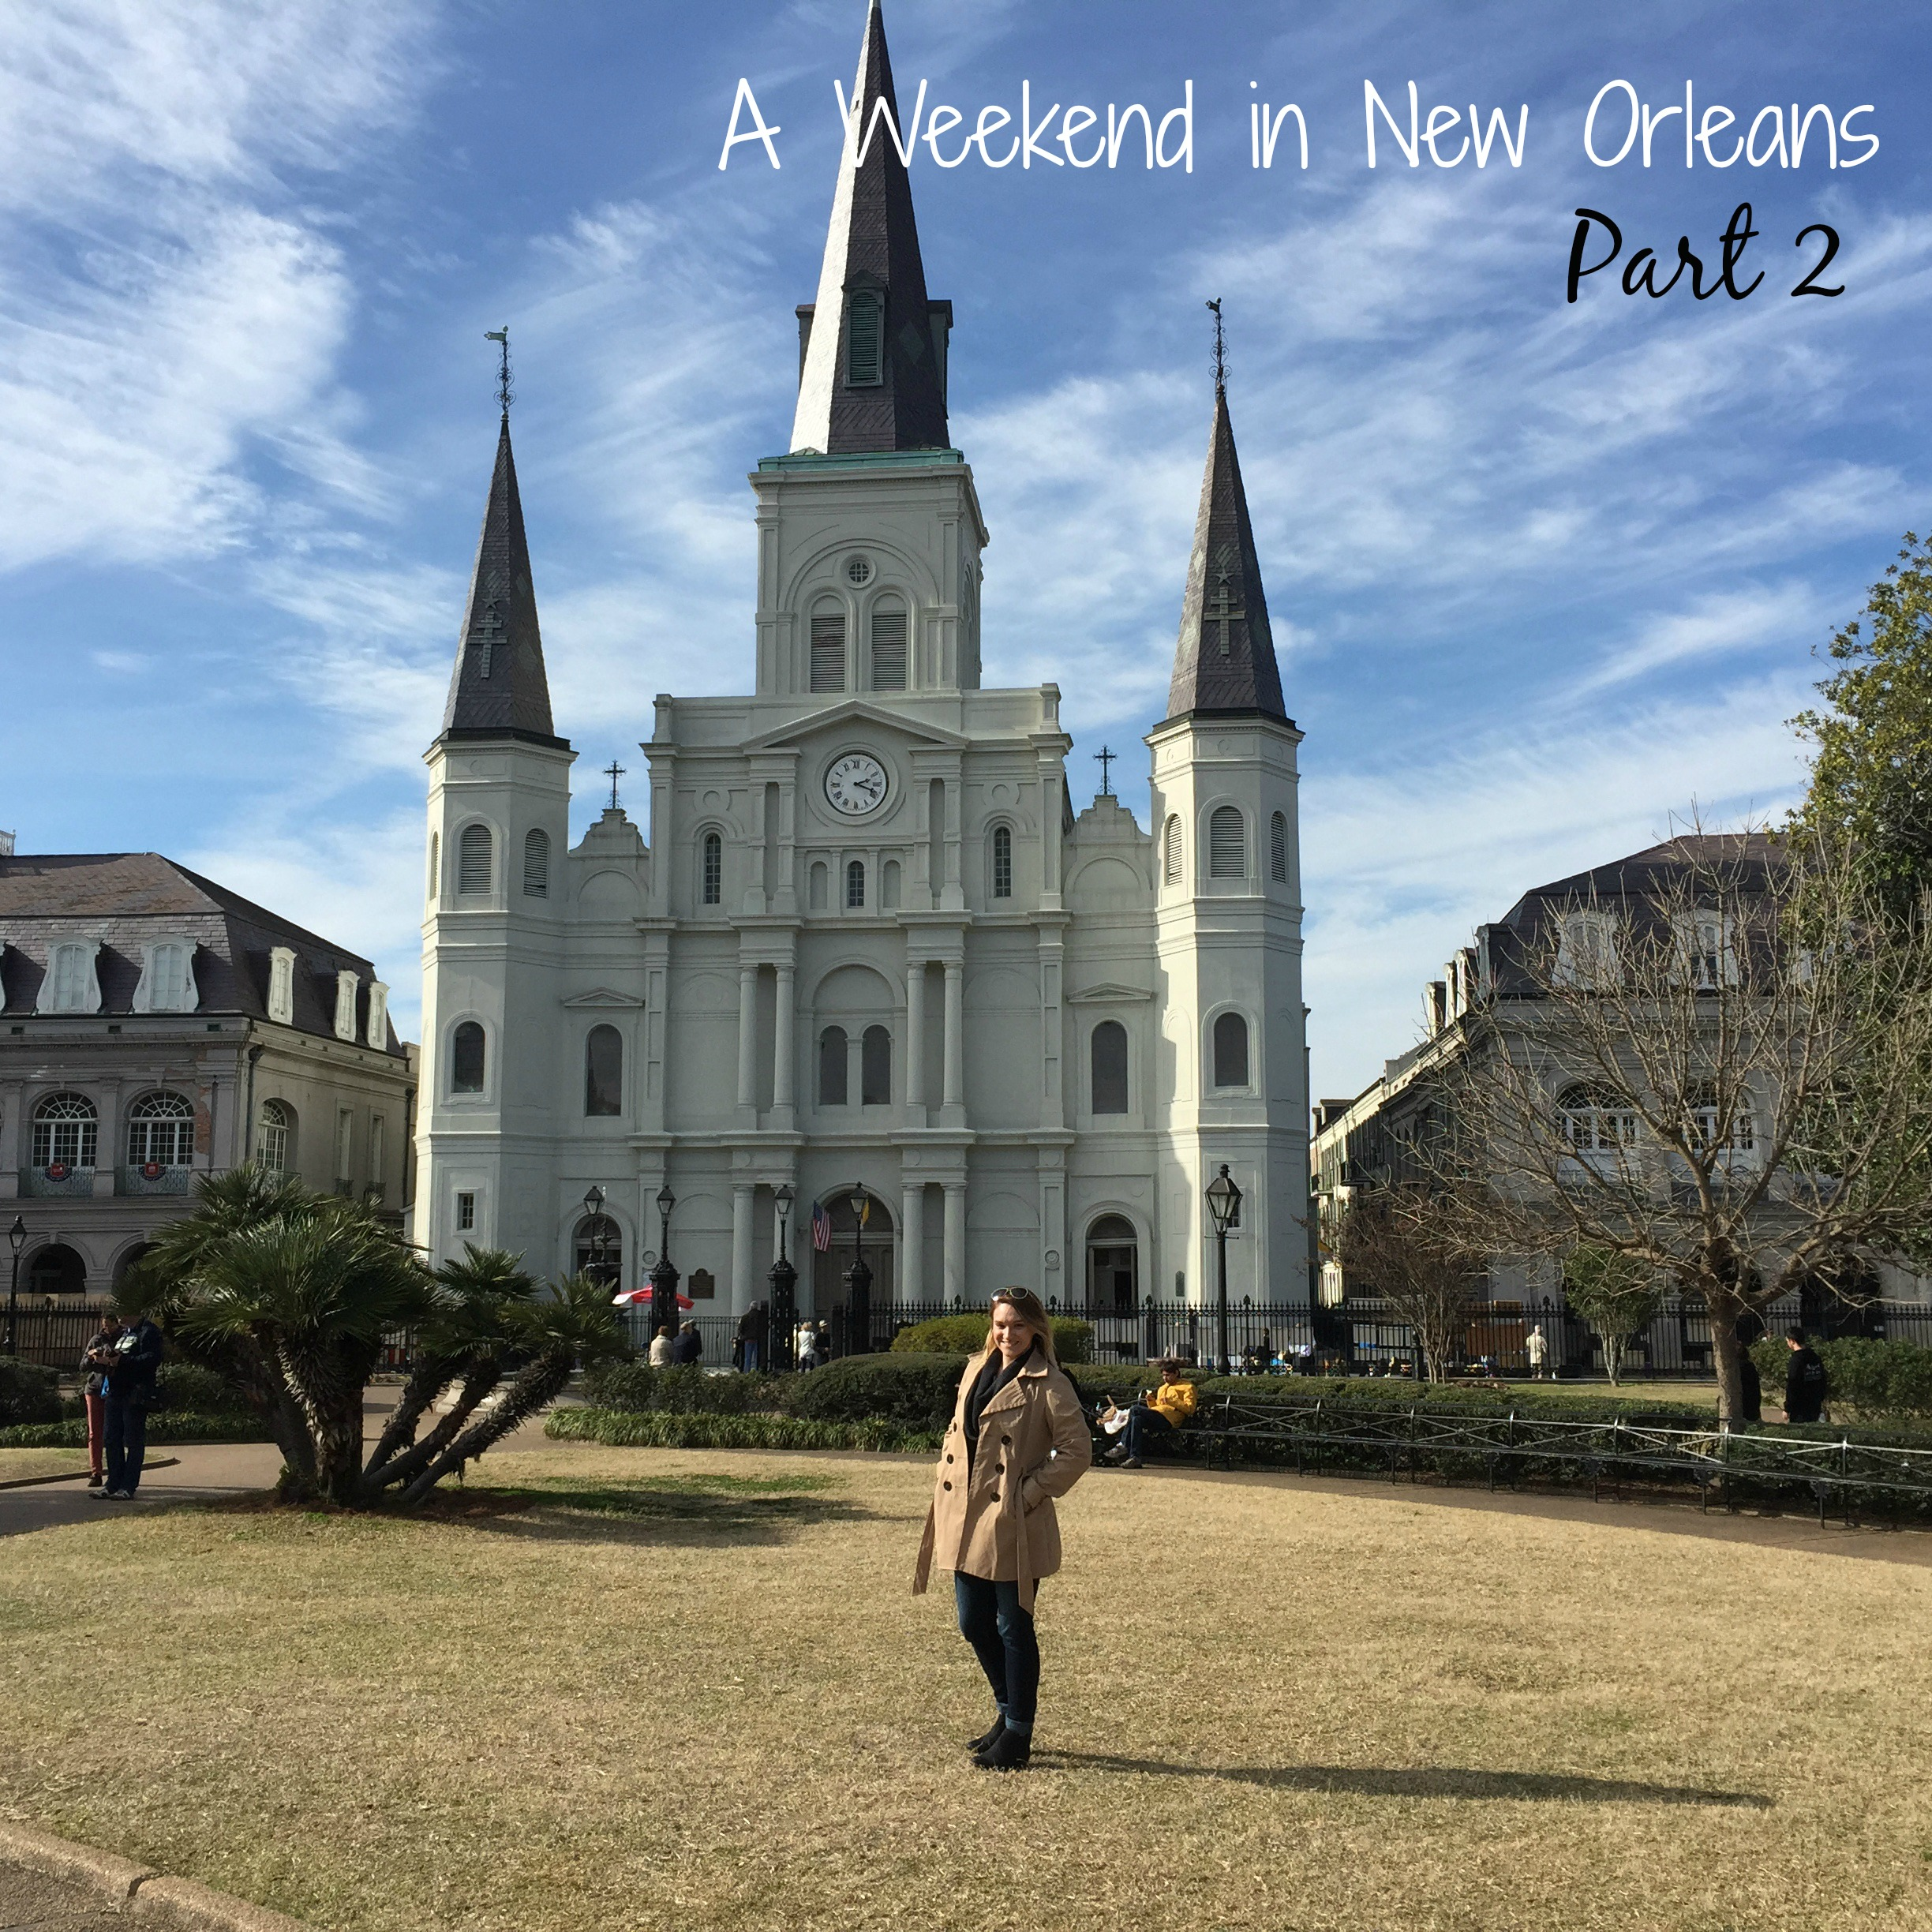 A Weekend in New Orleans Part 2